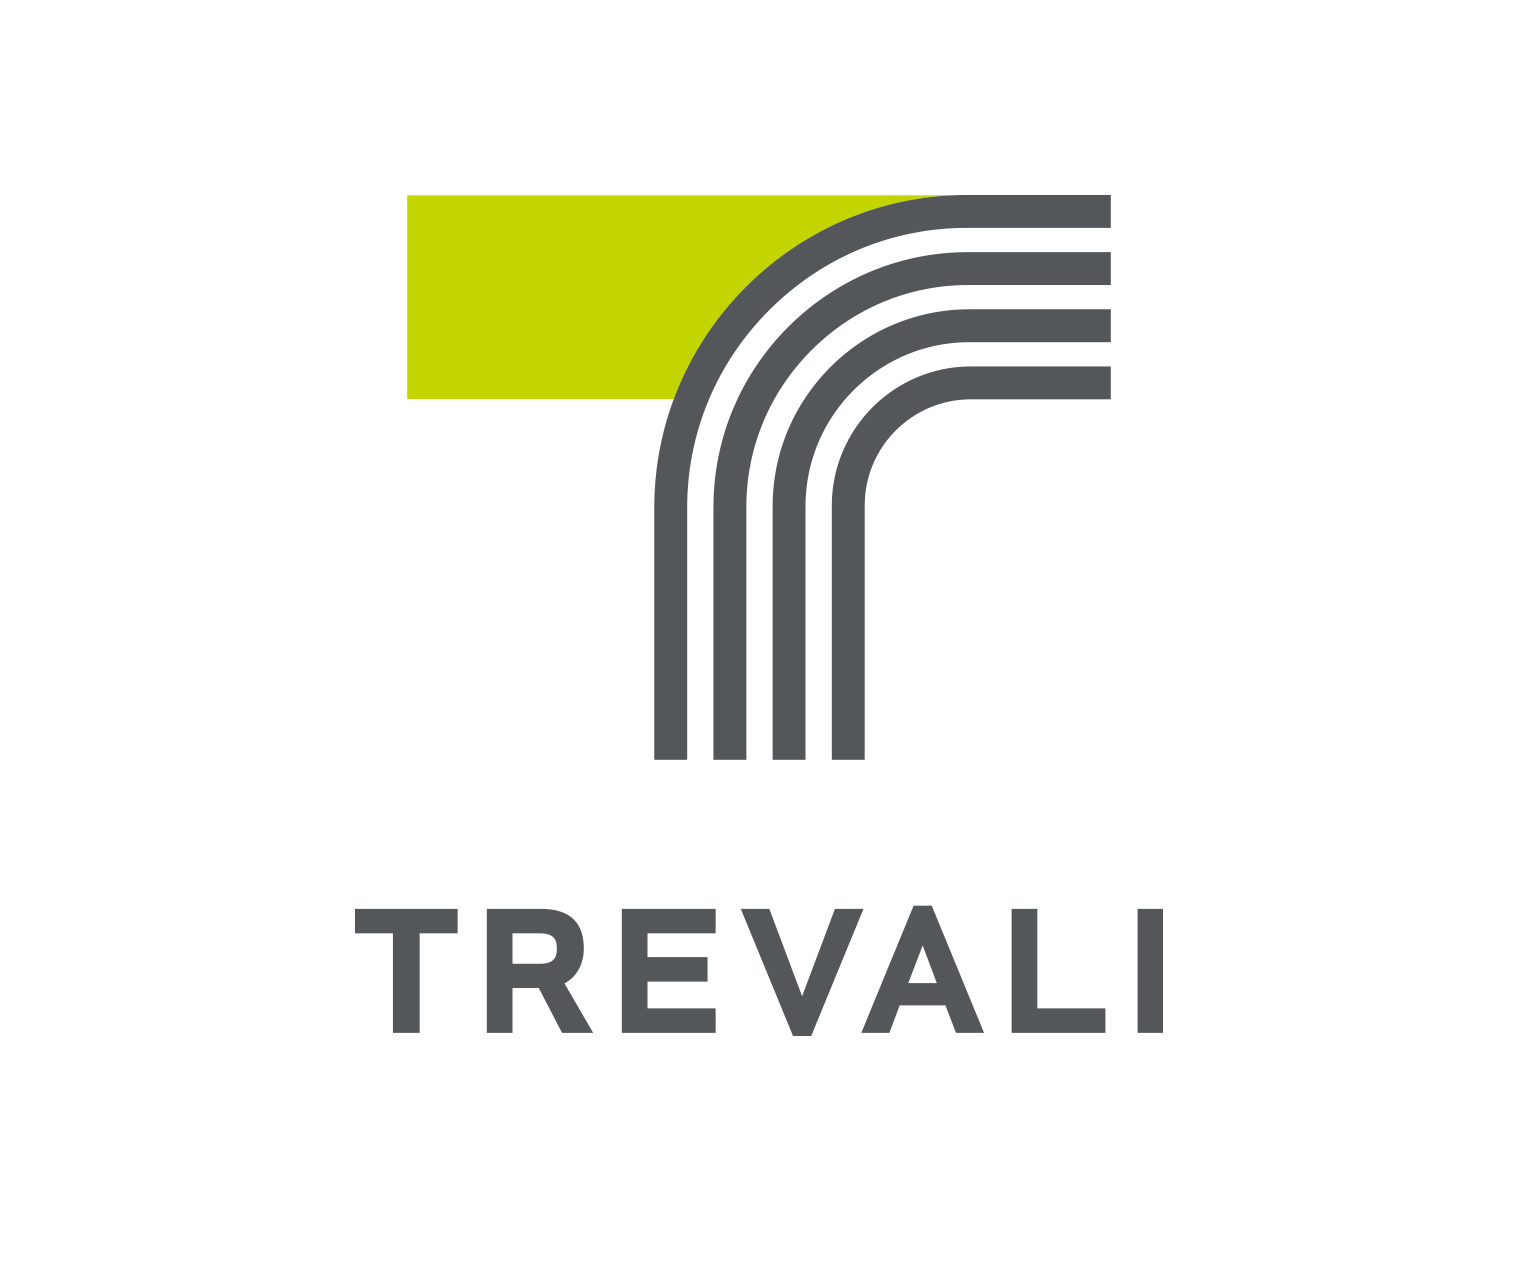 Trevali Announces Drill Results Extending the Western Orefield Deposit at Rosh Pinah at Depth and Along Strike